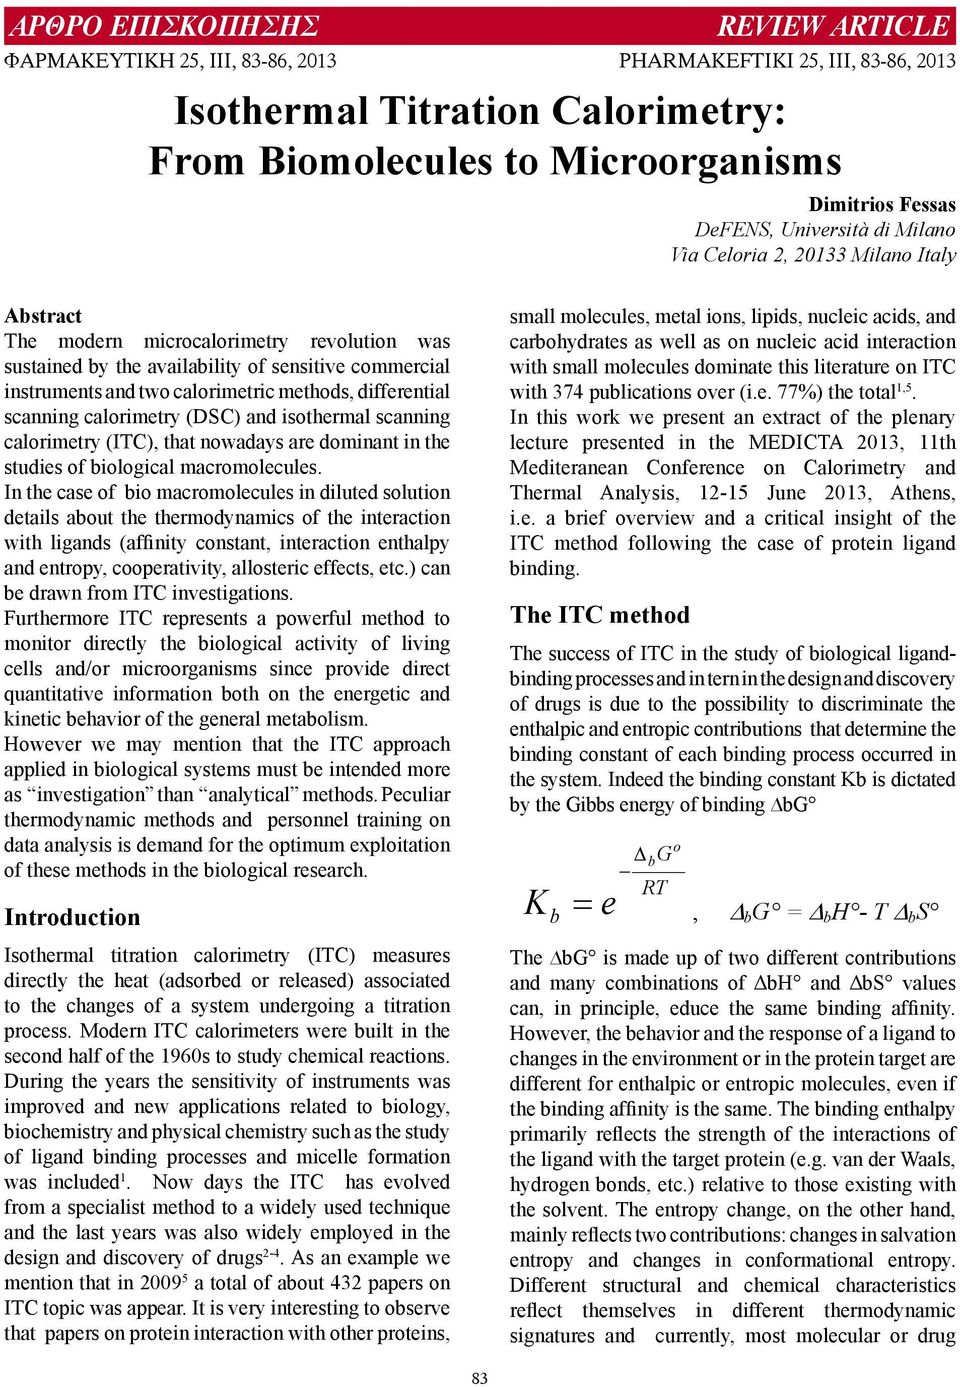 In the case of bio macromolecules in diluted solution details about the thermodynamics of the interaction with ligands (affinity constant, interaction enthalpy and entropy, cooperativity, allosteric